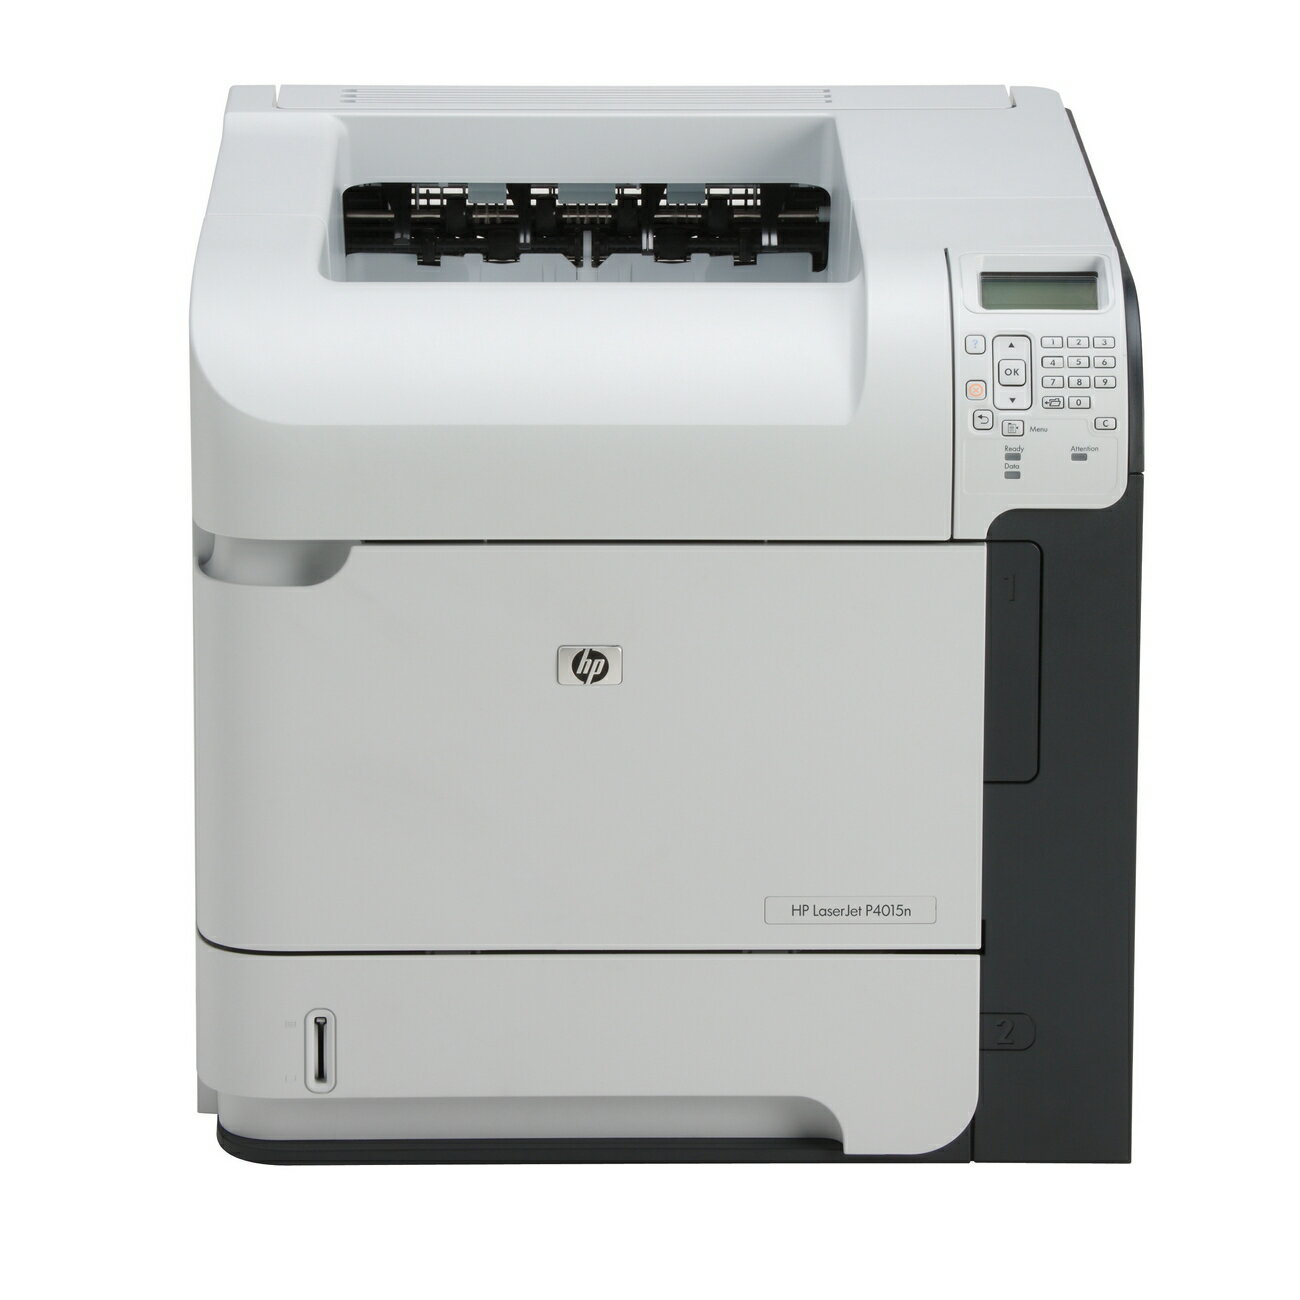 Refurbished HP LaserJet P4015N Laser Printer - Monochrome 0